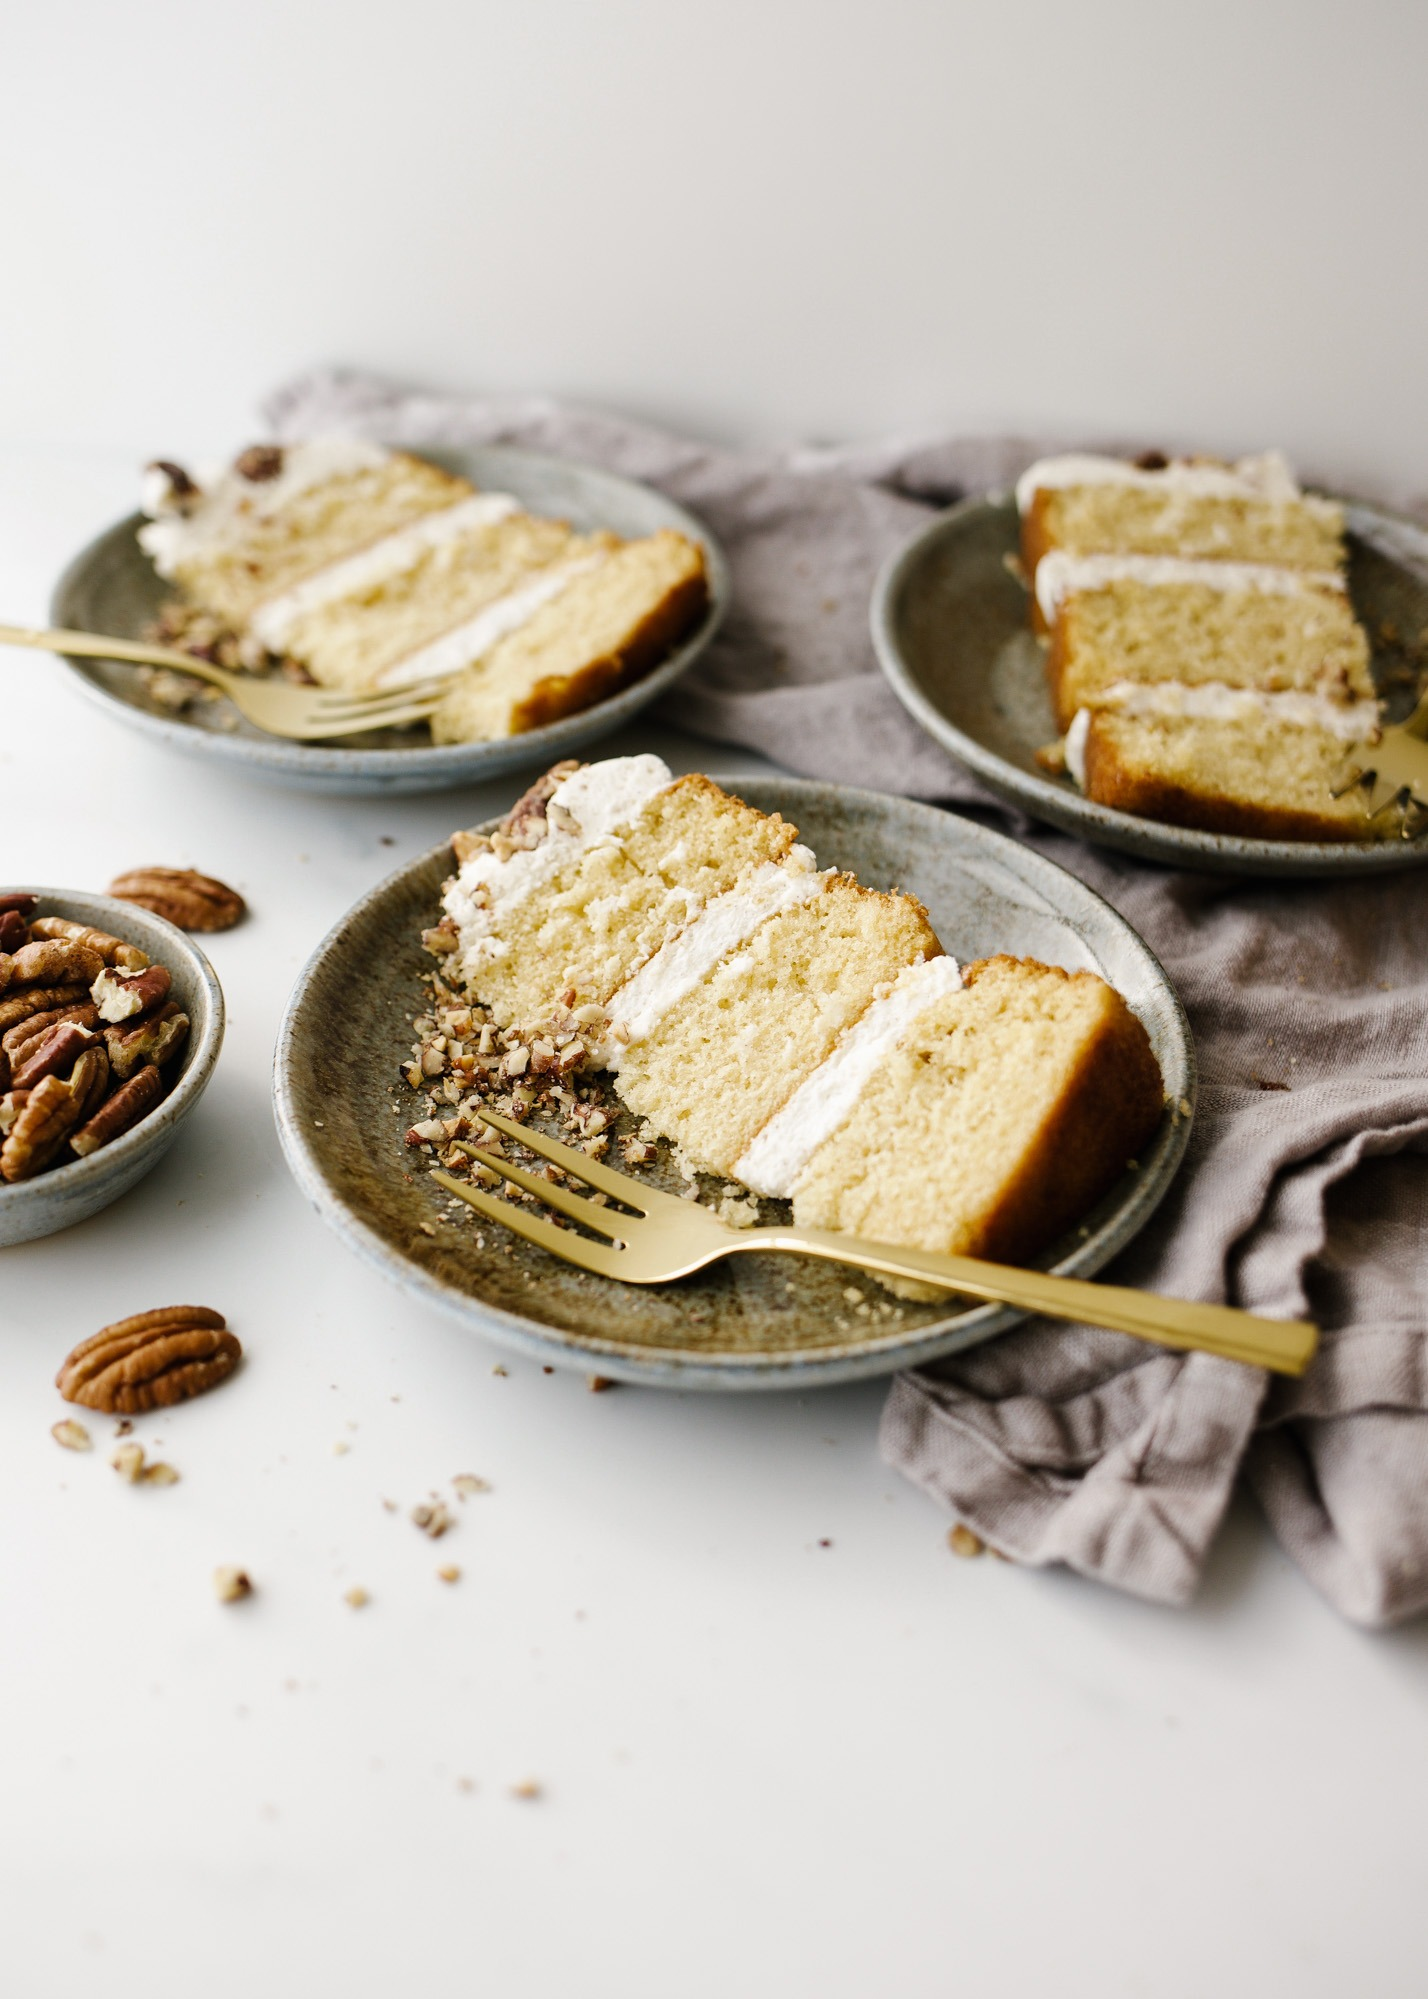 Brown Butter Cake with Candied Pecans by Wood and Spoon blog. This is a simple brown sugar mini layer cake with brown butter buttercream and candied pecans throughout. This small batch recipe makes a small layer cake to serve just a few and makes for a festive offering for fall, winter, and holiday celebration desserts. Learn how to candy nuts and stack a naked layer cake on thewoodandspoon.com